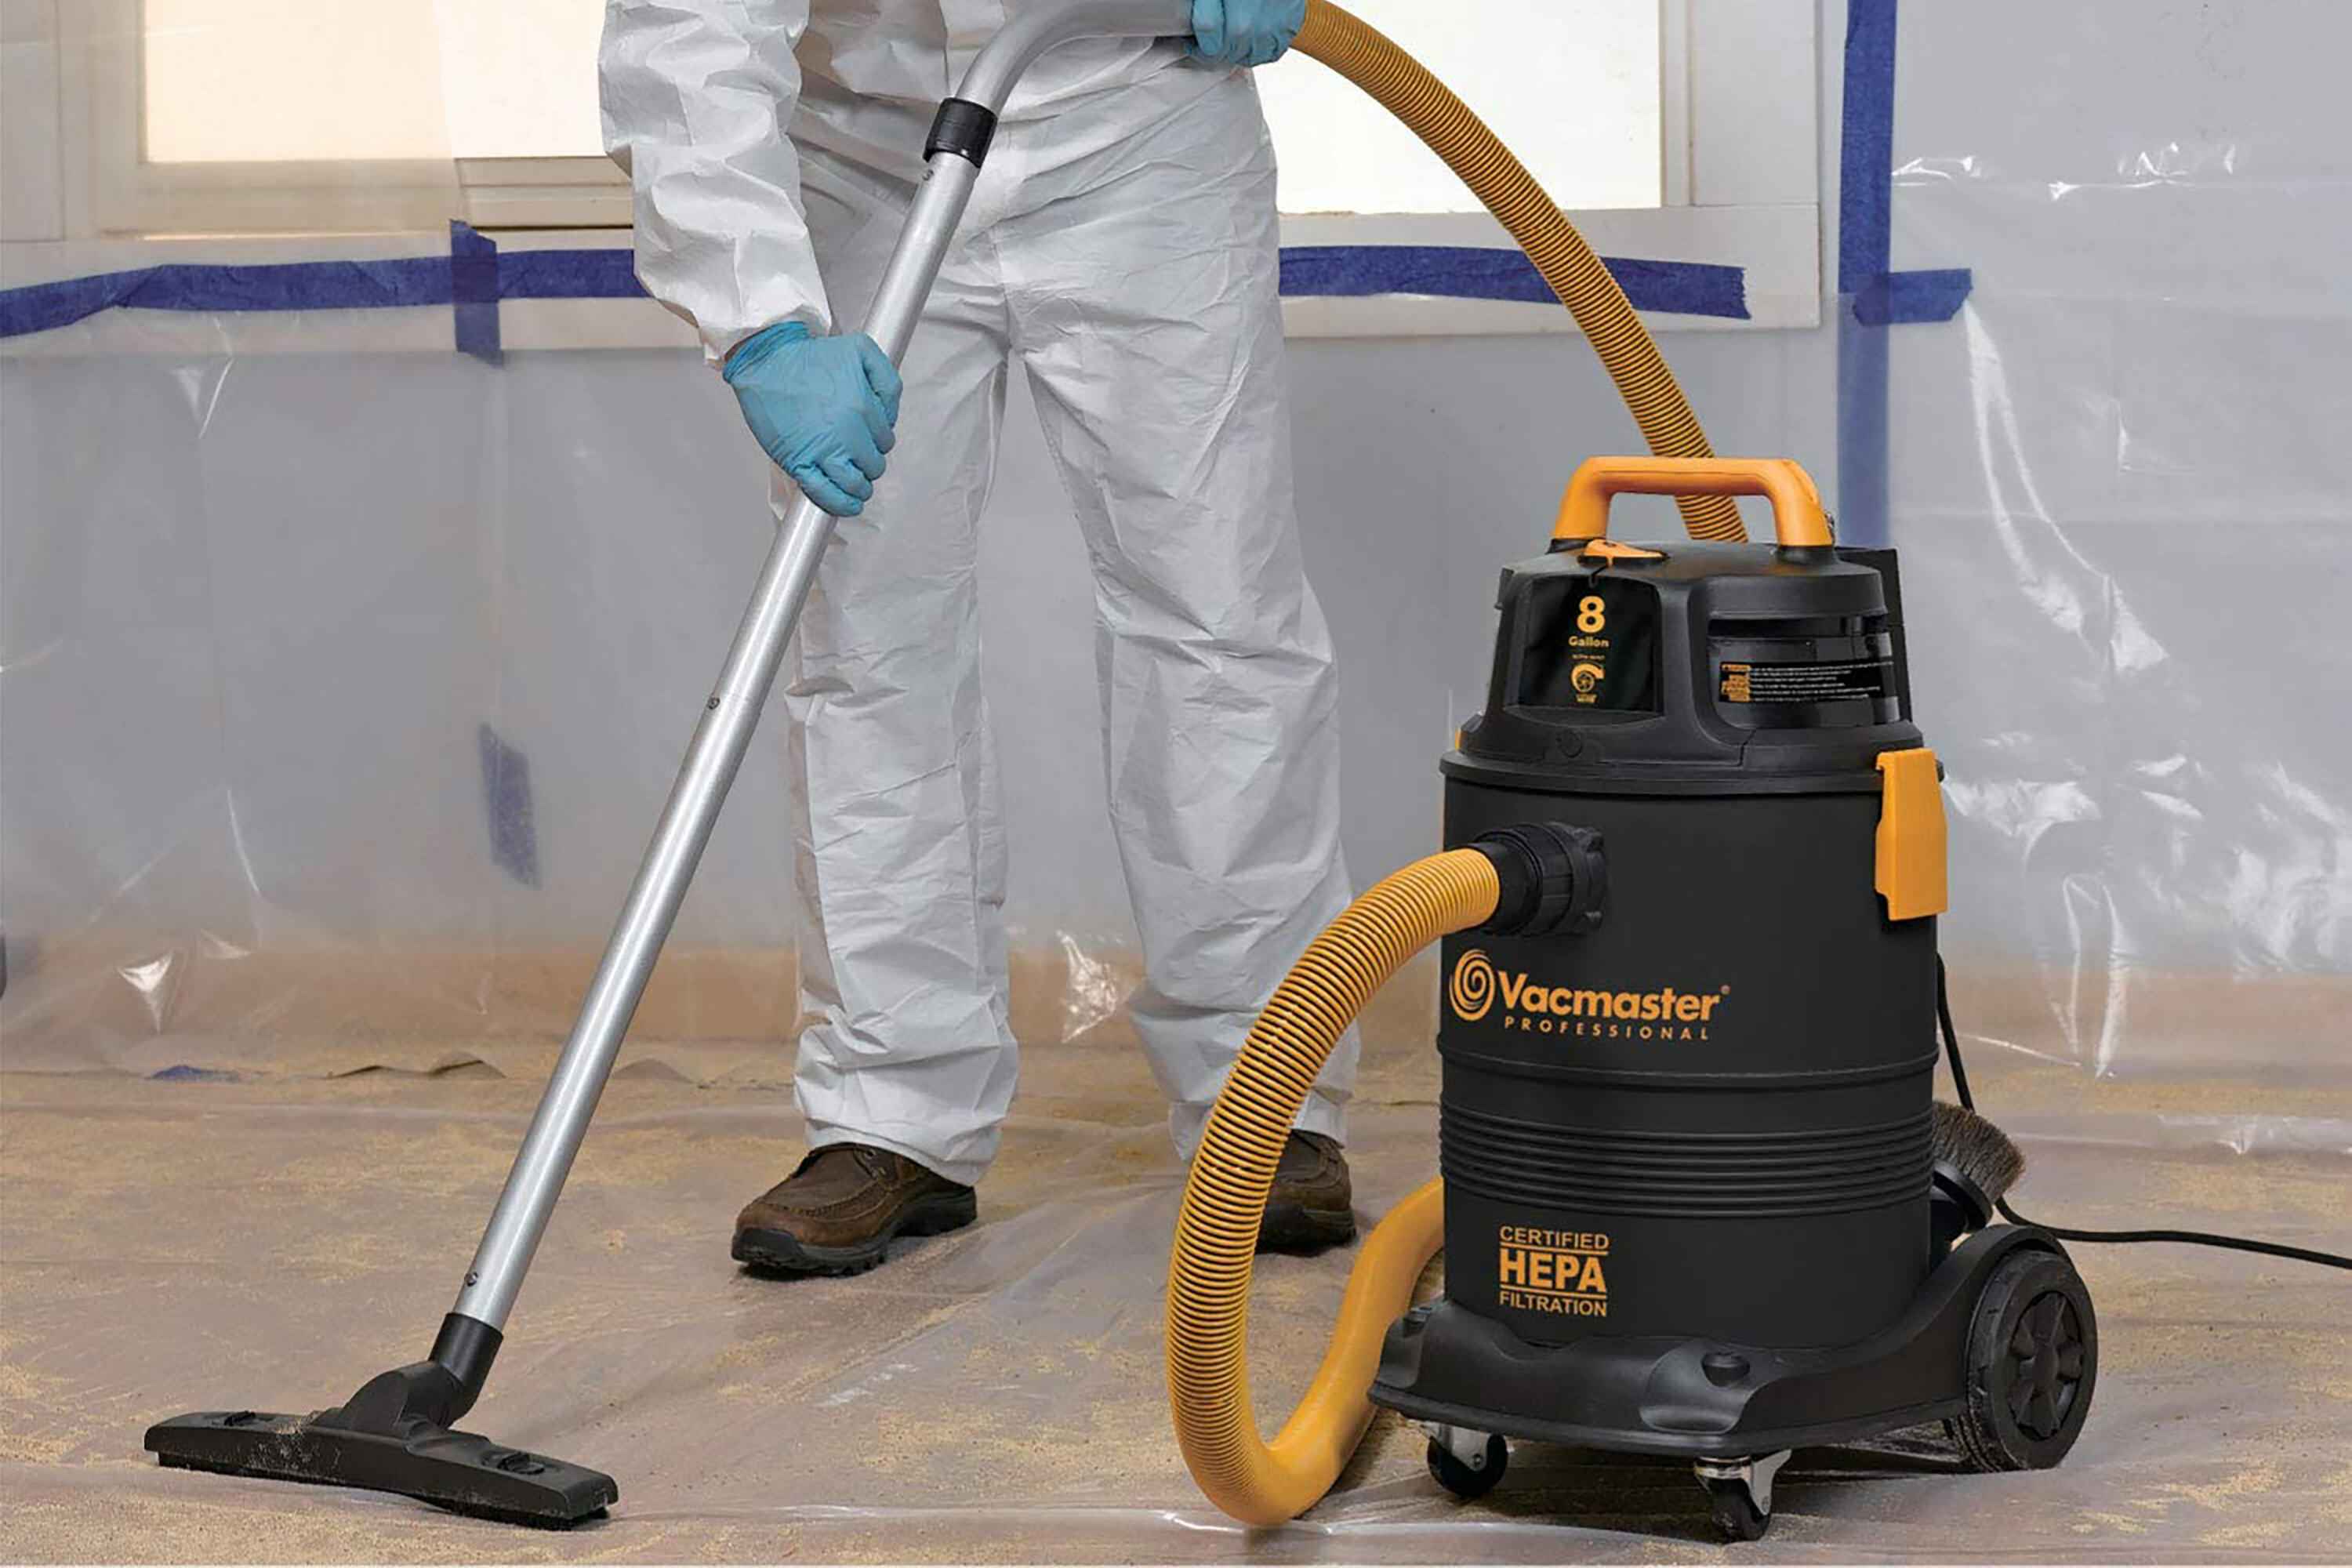 vacmaster-pro-8-gallon-certified-hepa-filtration-wet-dry-shop-vac